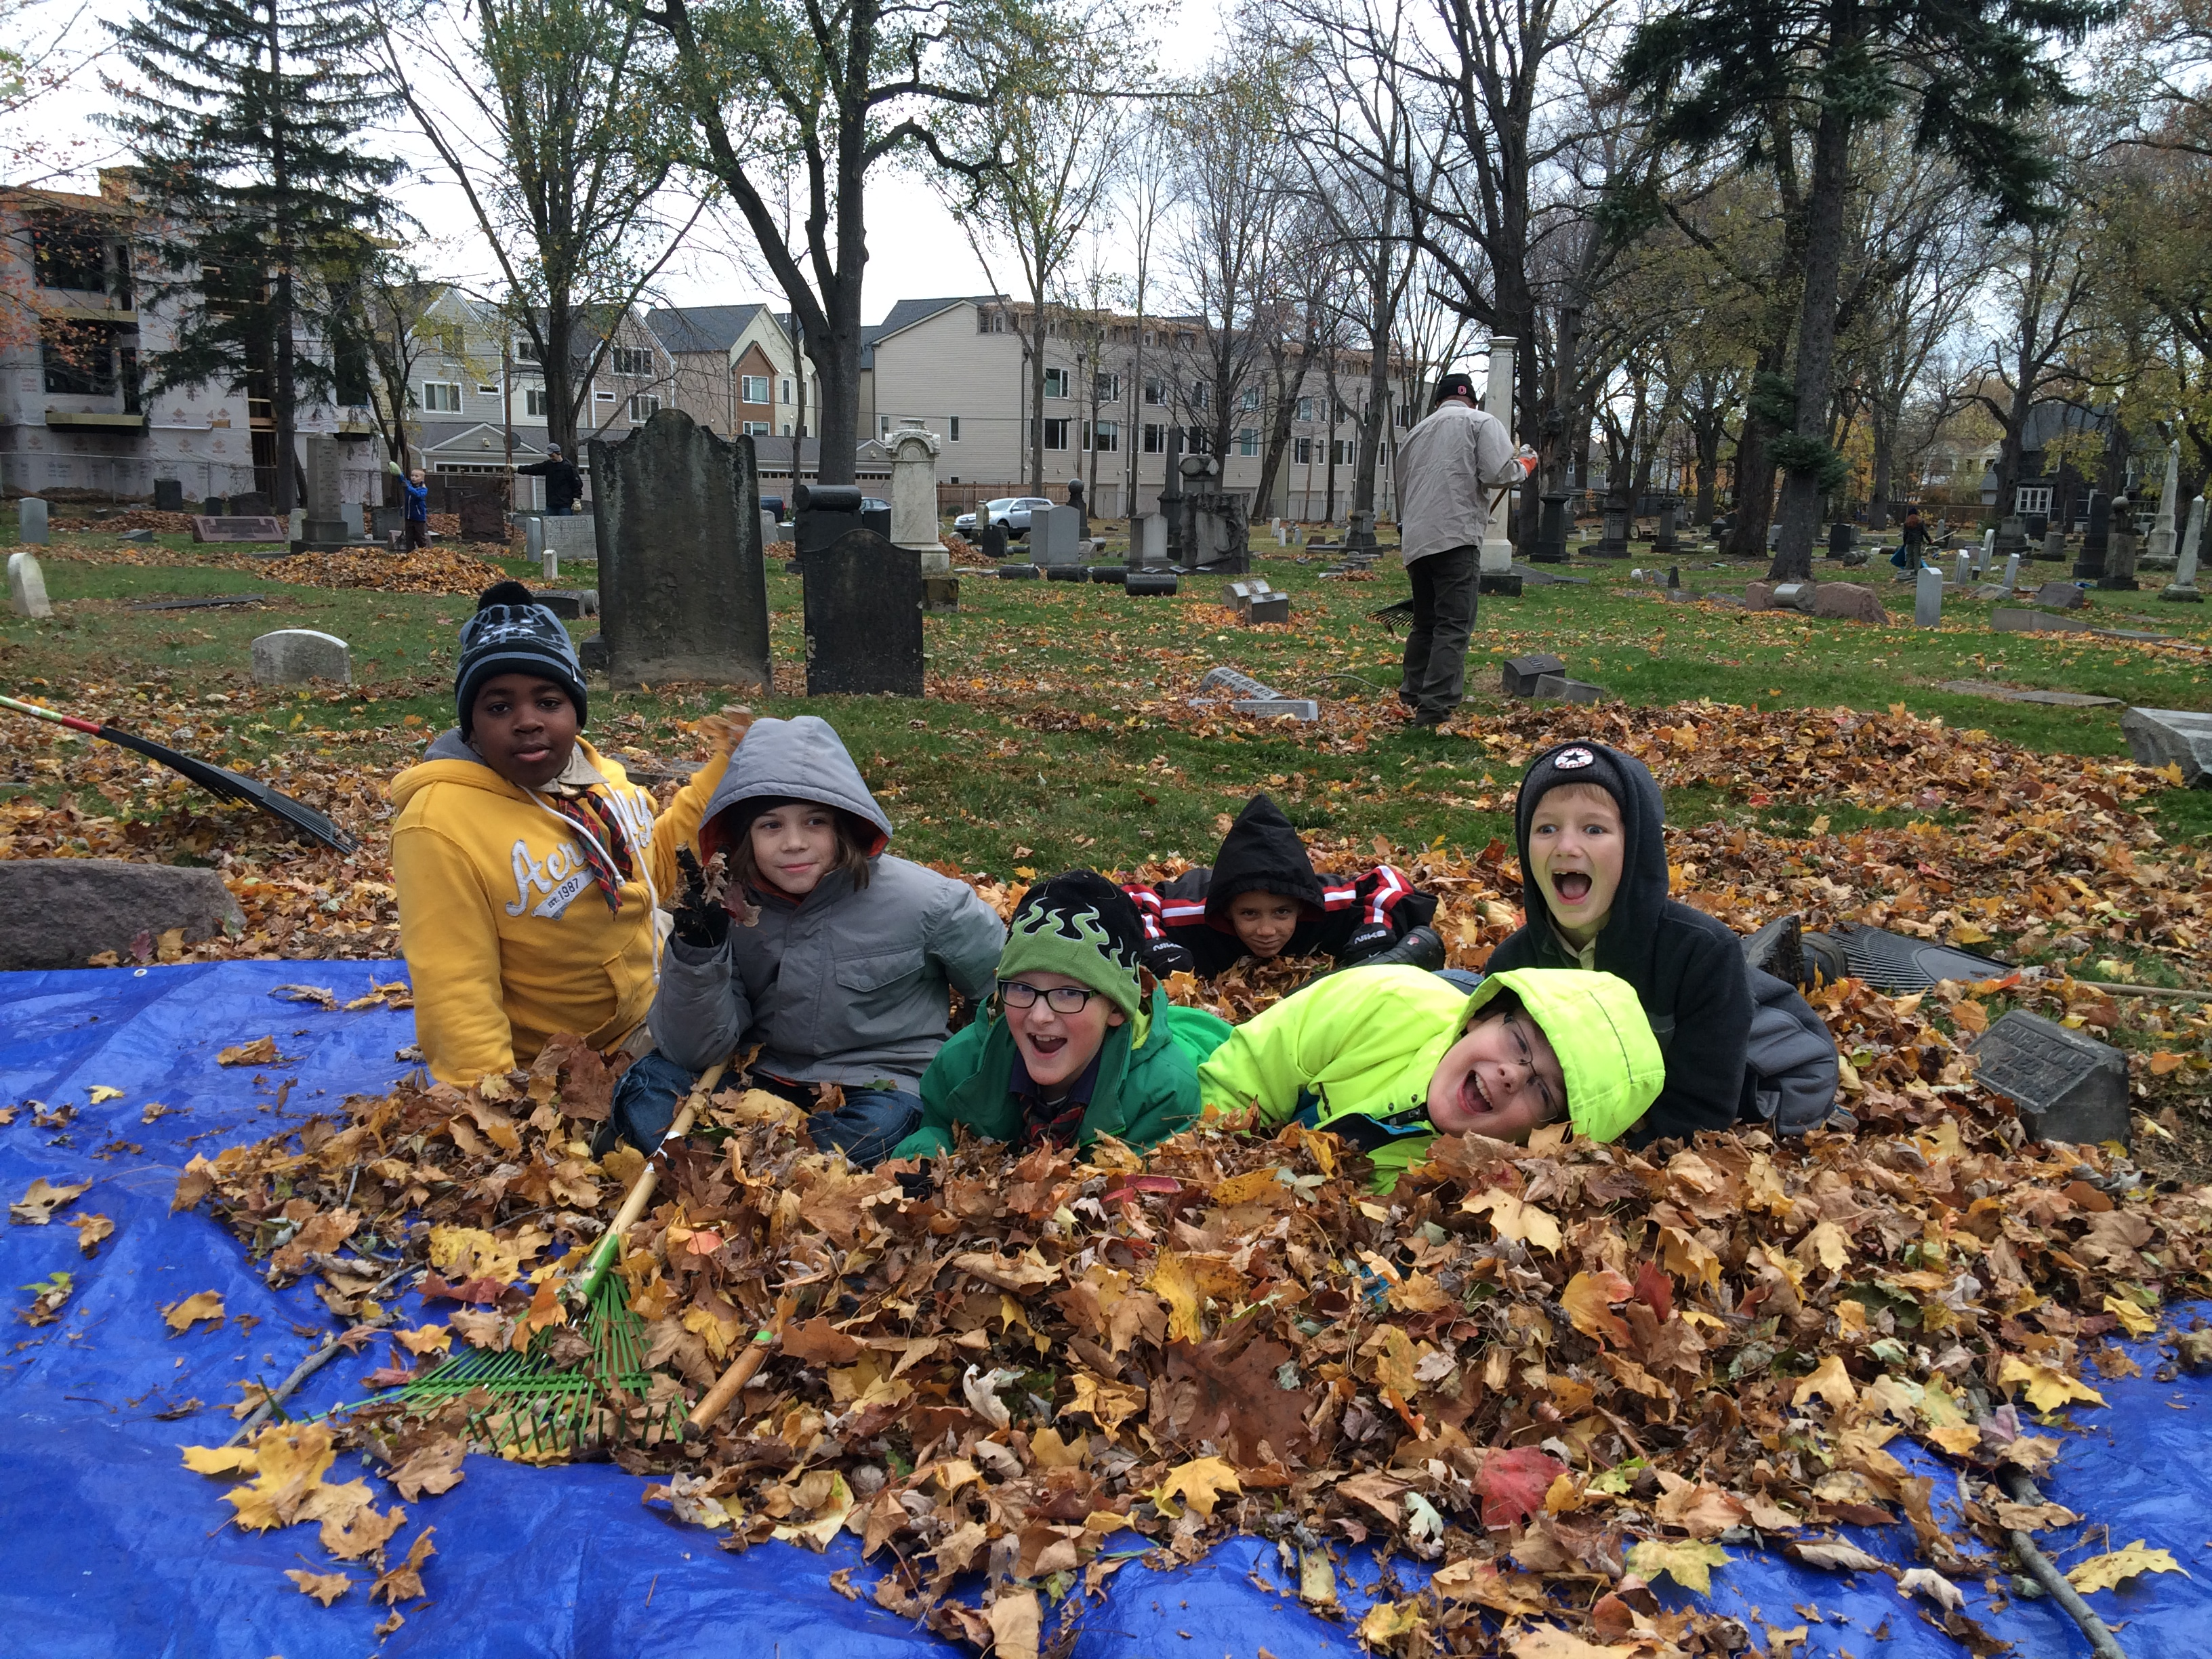 Pack 11 provided community service by raking at the East Cleveland Township Cemetery on November 14, 2015. The cub scouts had a great time and, along with other area scouts, raked the entire graveyard in less than 5 hours!